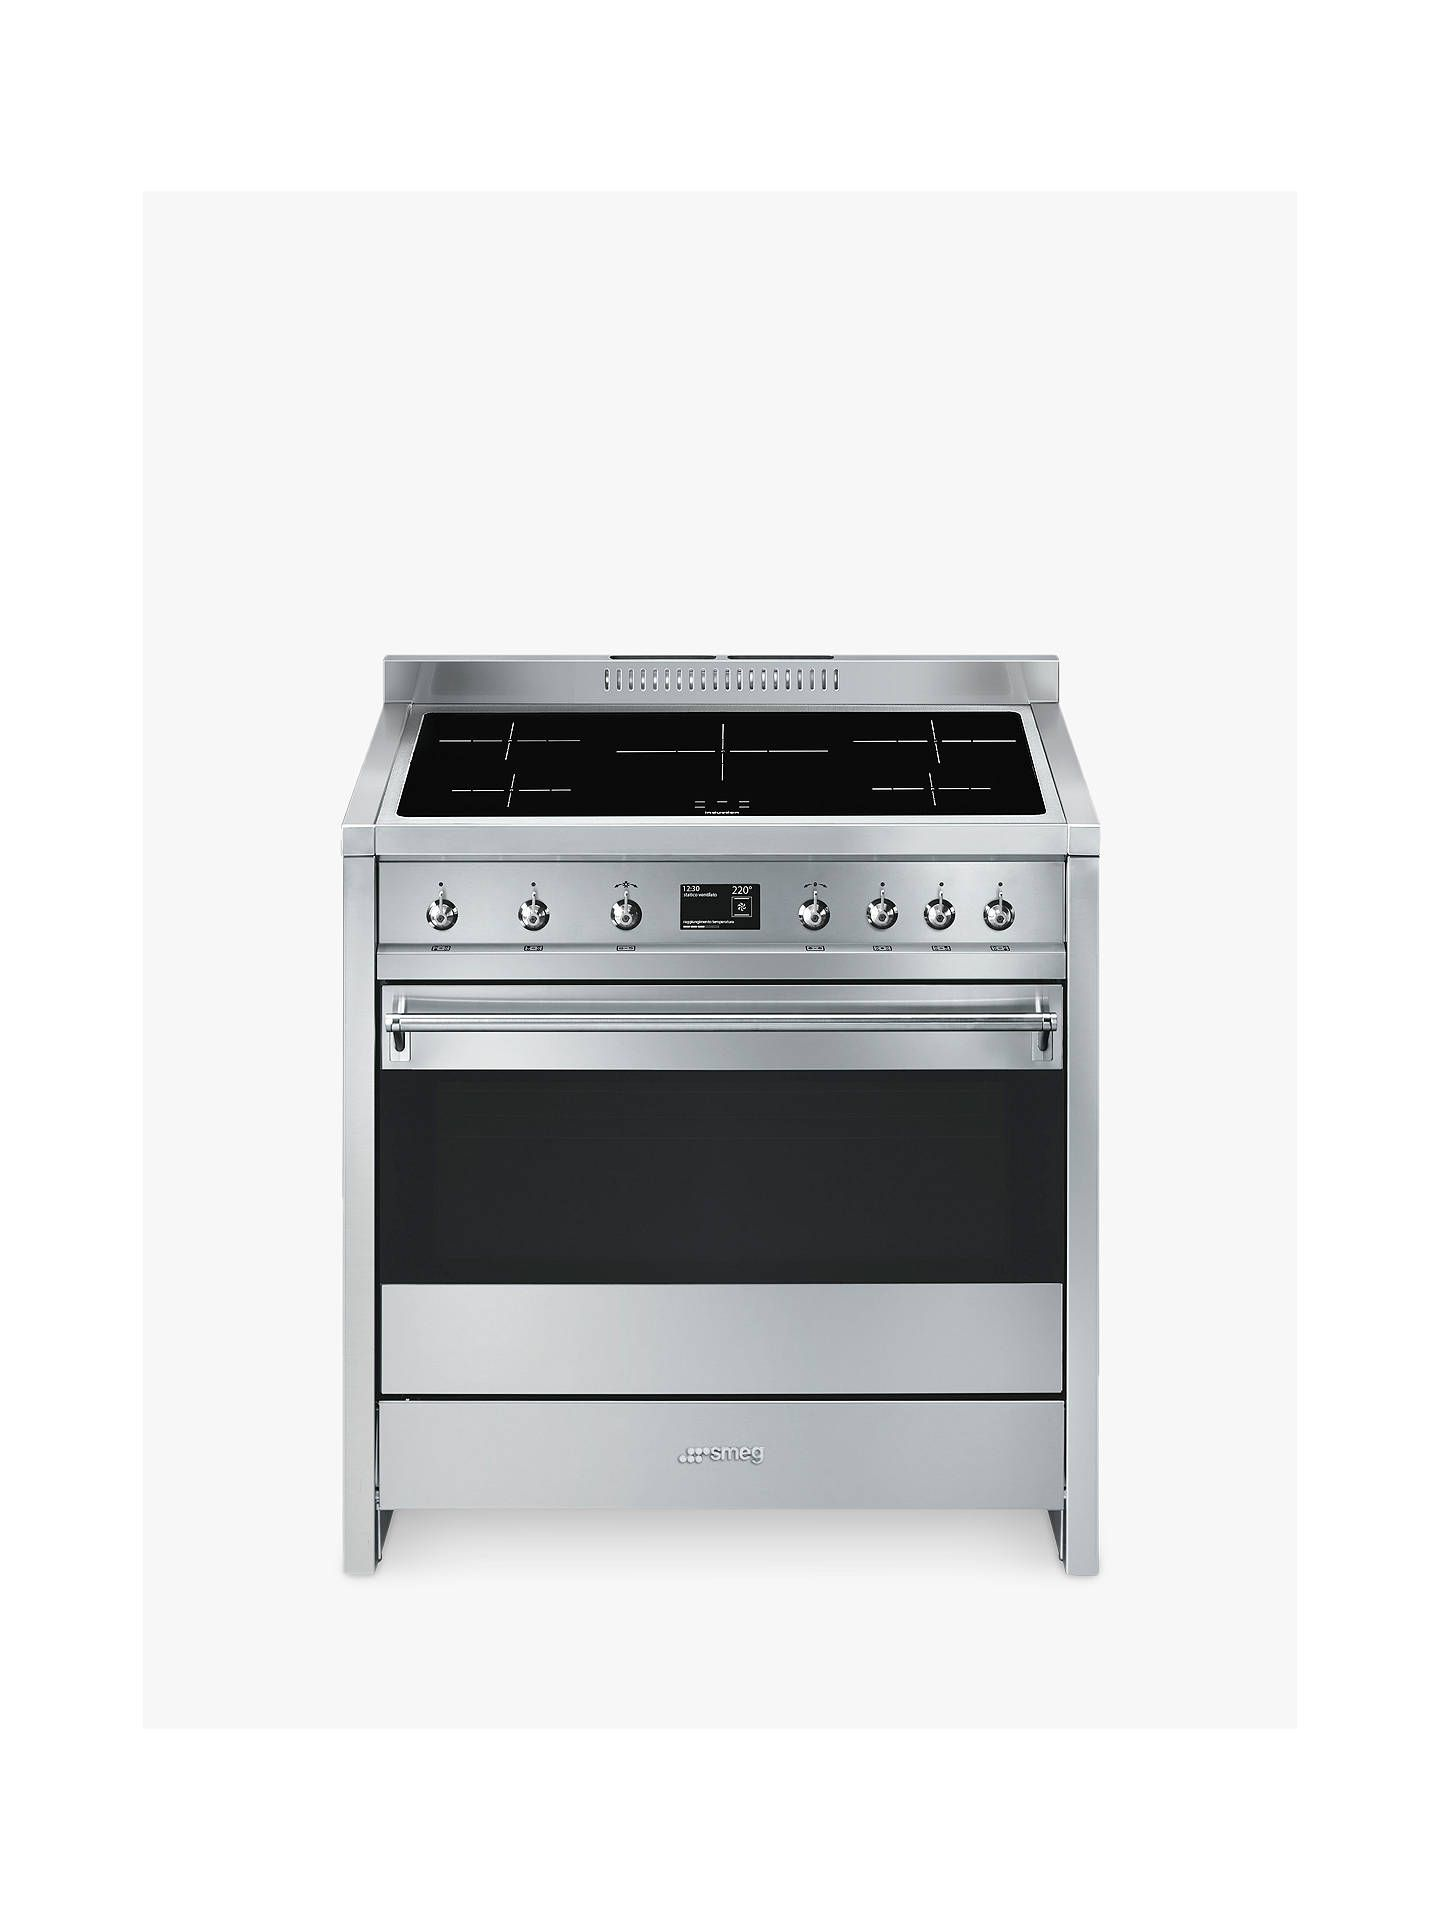 Smeg A1pyid 9 90cm Single Electric Cooker A Energy Rating Stainless Steel Online At Johnlewis